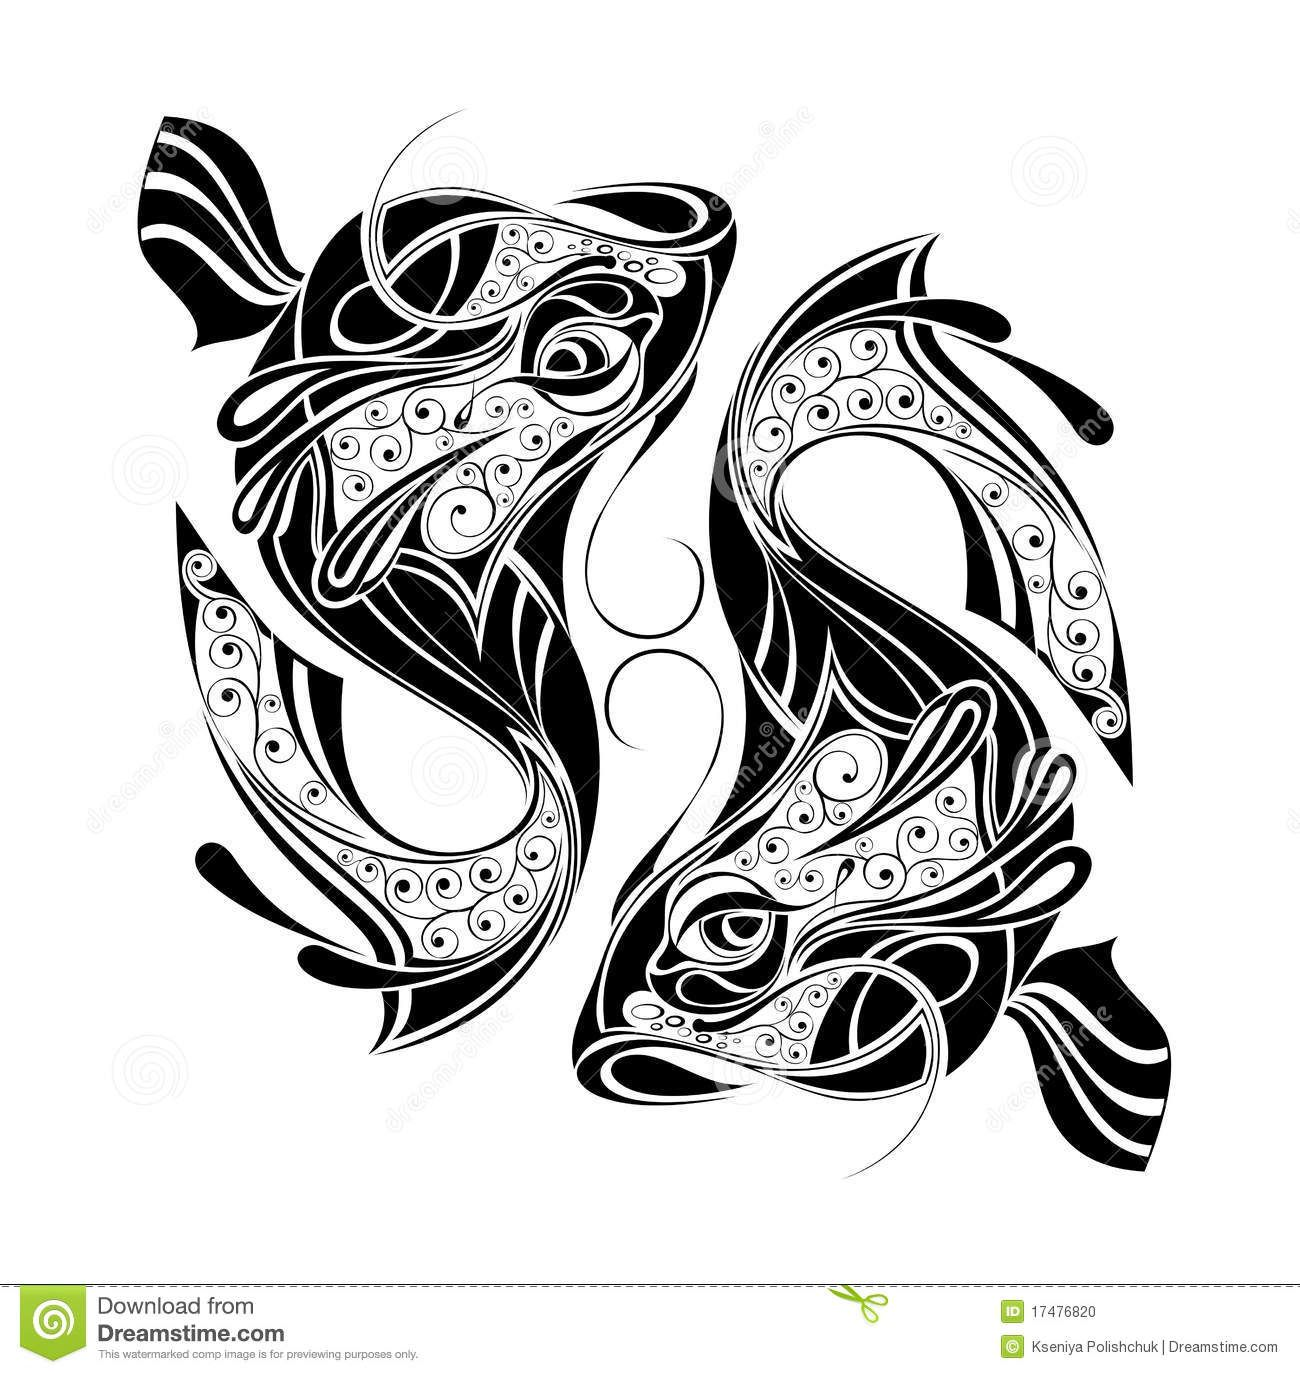 Zodiac wheel with sign of pisces tattoo design stock photo image pisces pinterest - Tatouage tribal signification ...